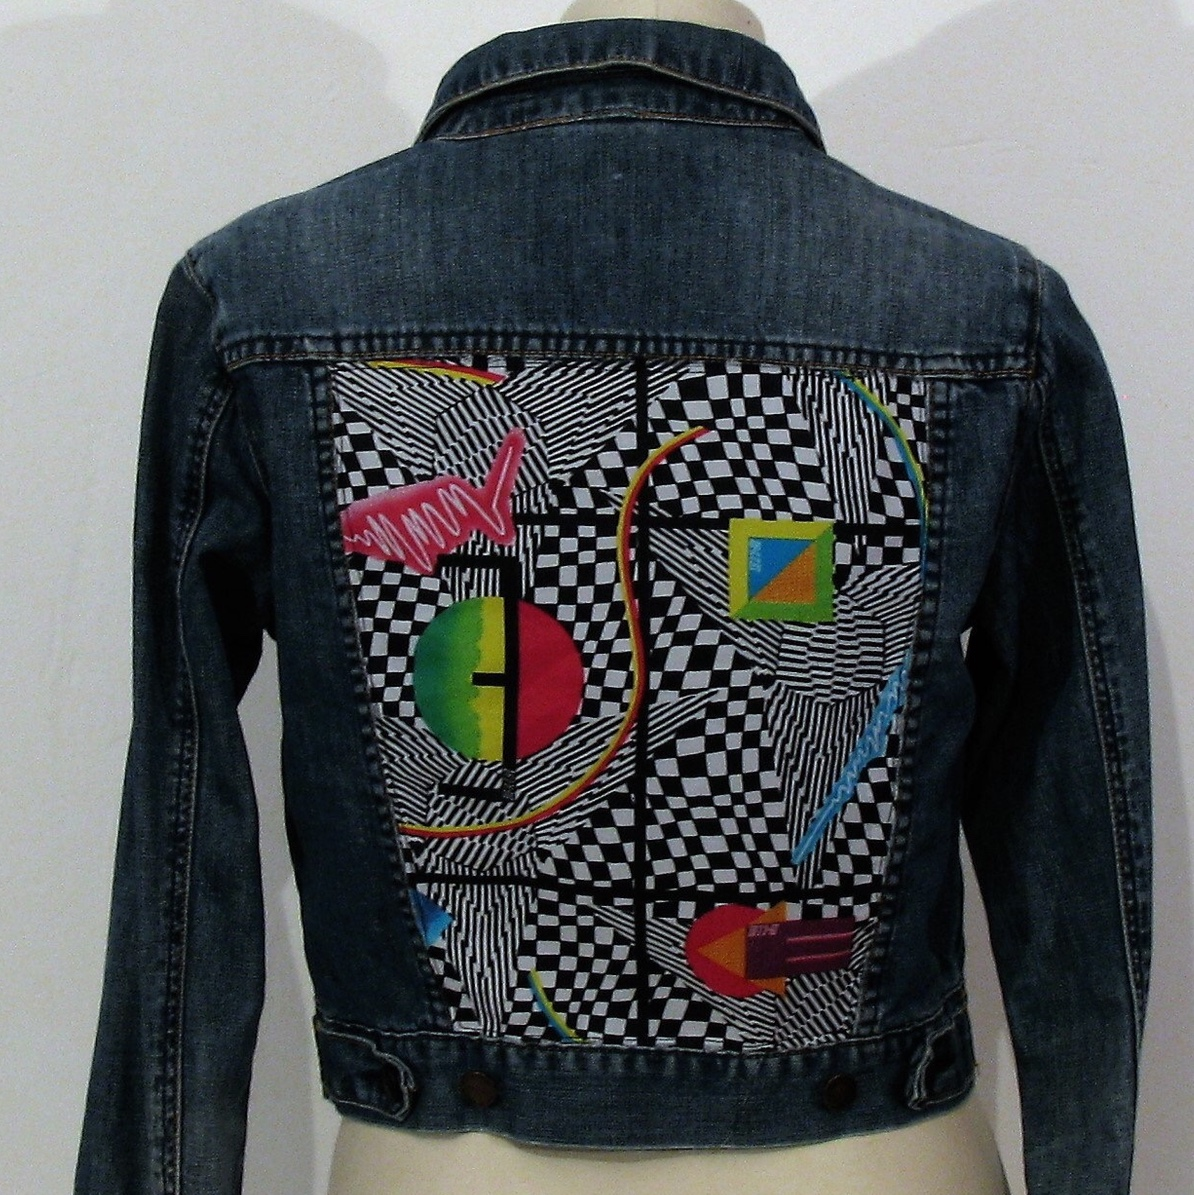 MEMPHIS JACKET Reworked vintage denim jacket with    - Depop